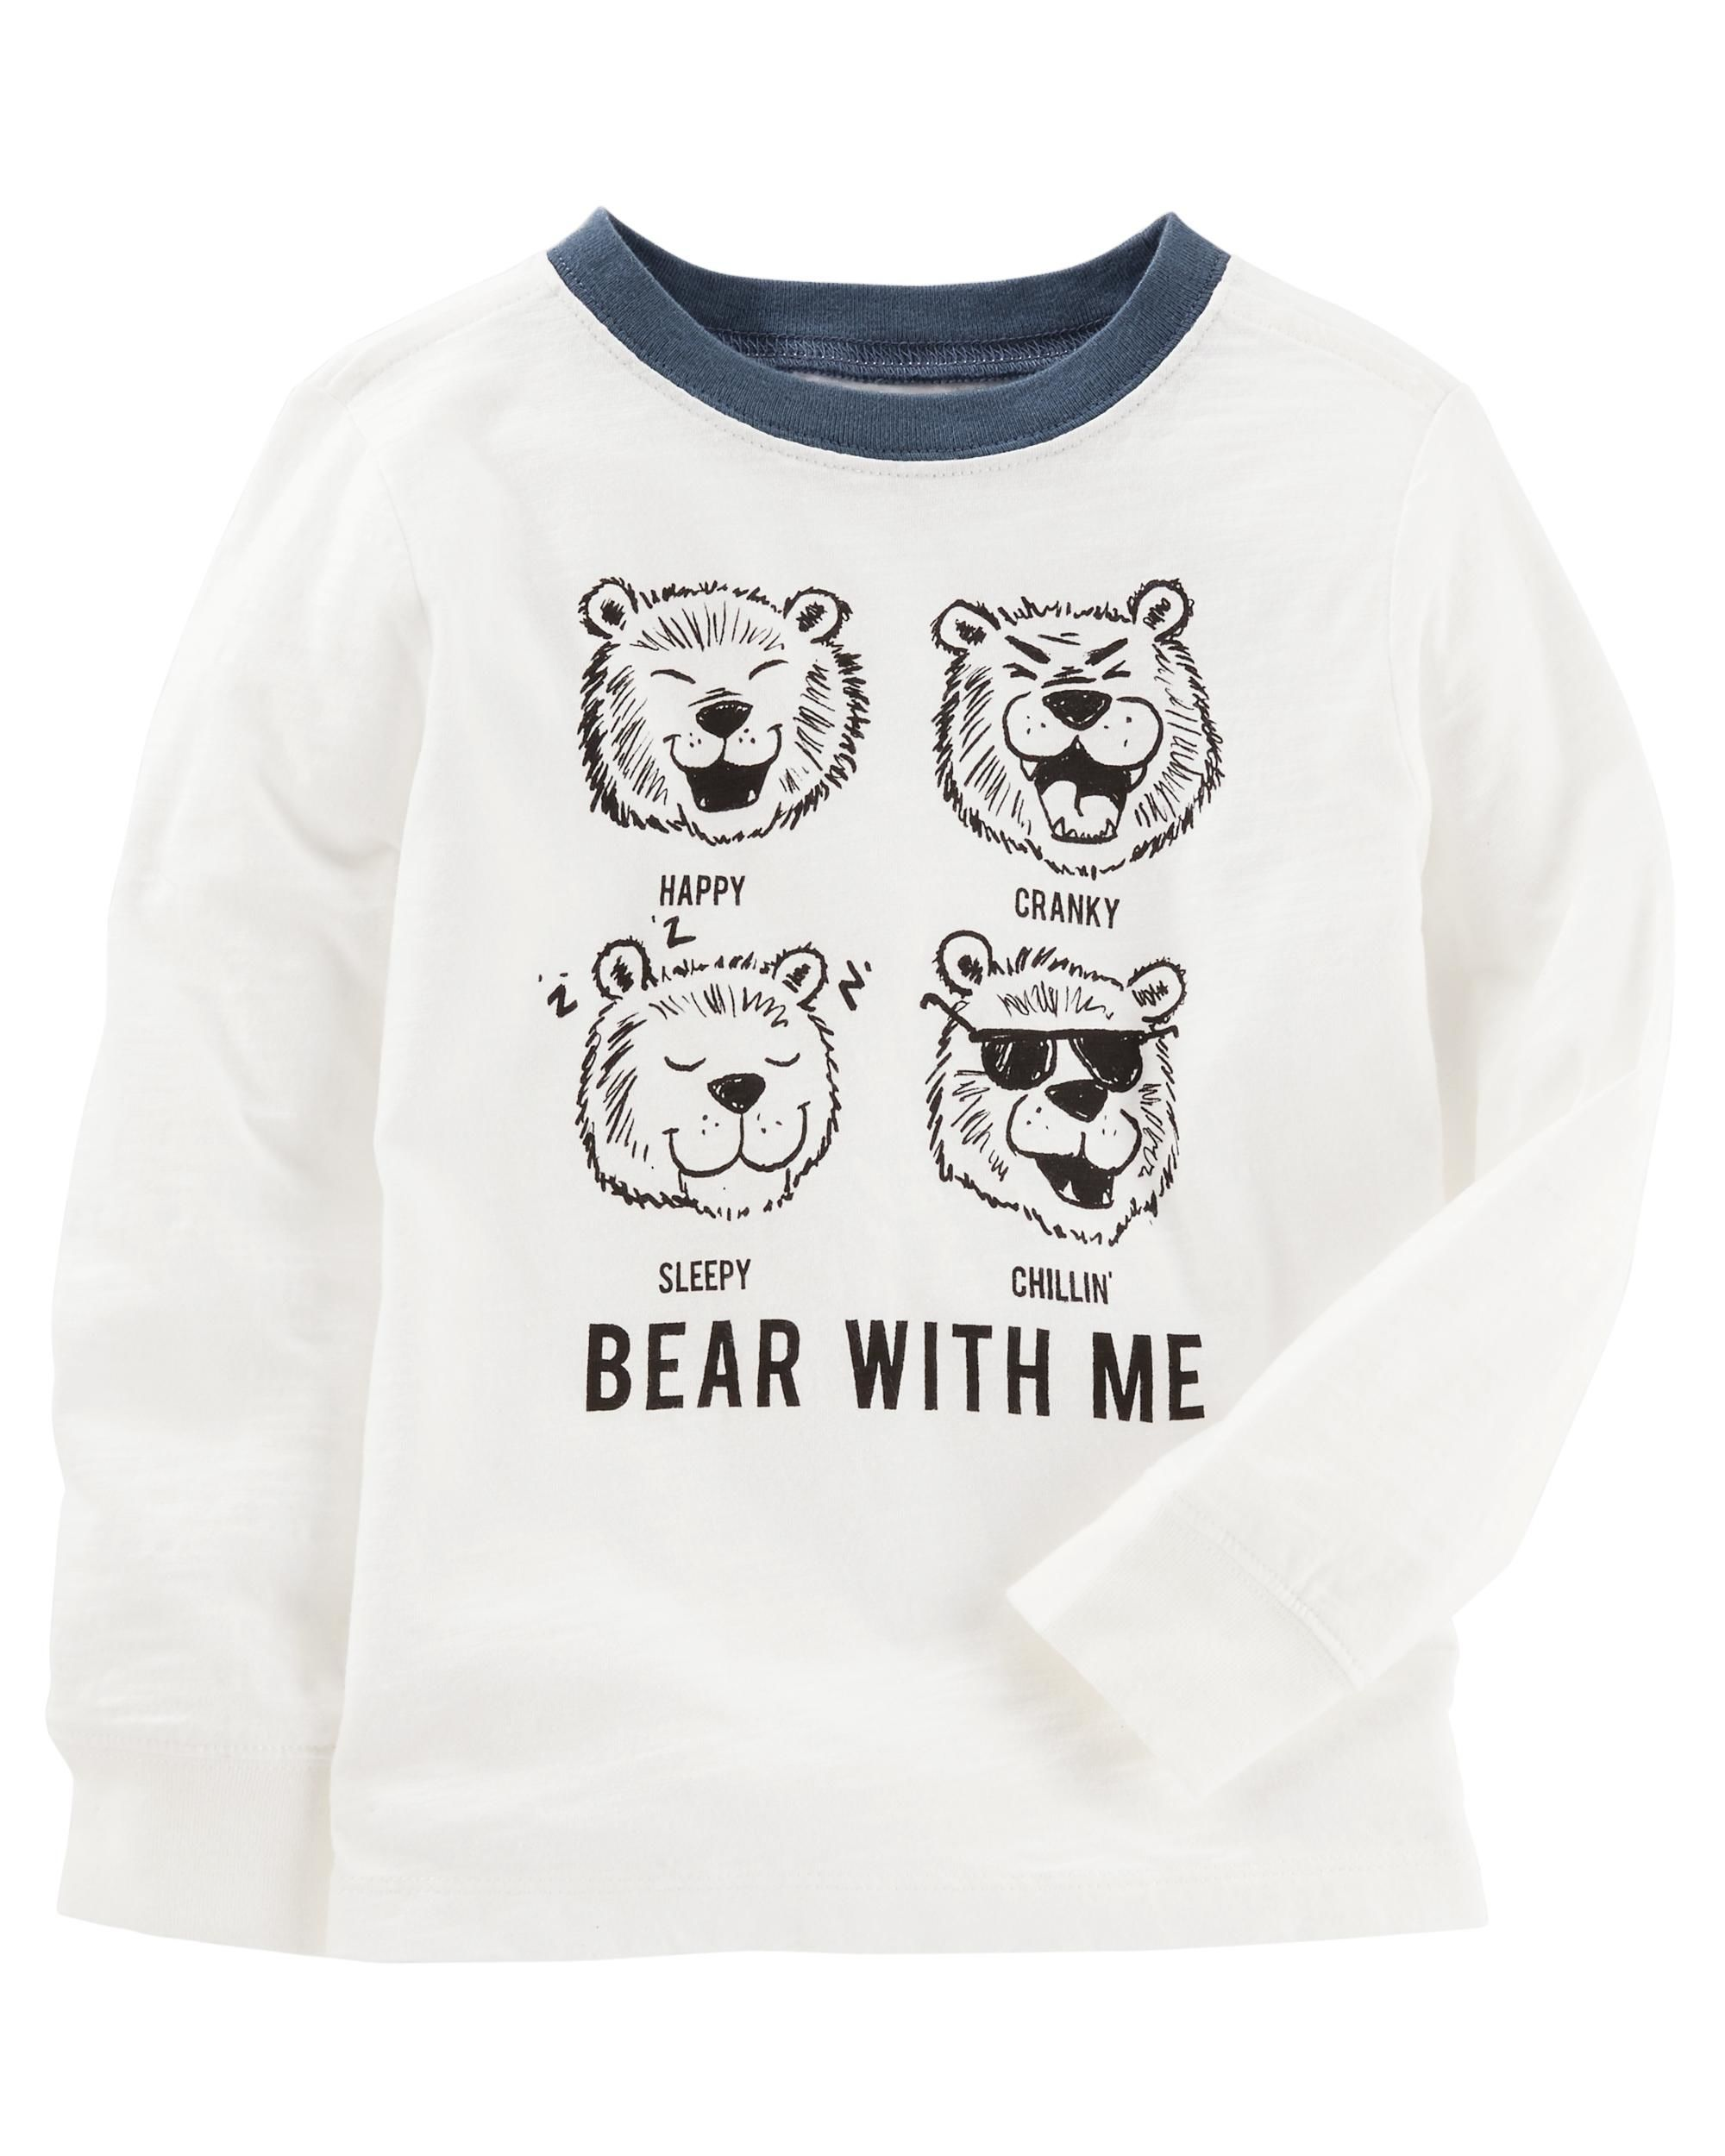 Baby Clothes Near Me Bear With Me Jersey Tee  Toddler Boys And Babies Clothes